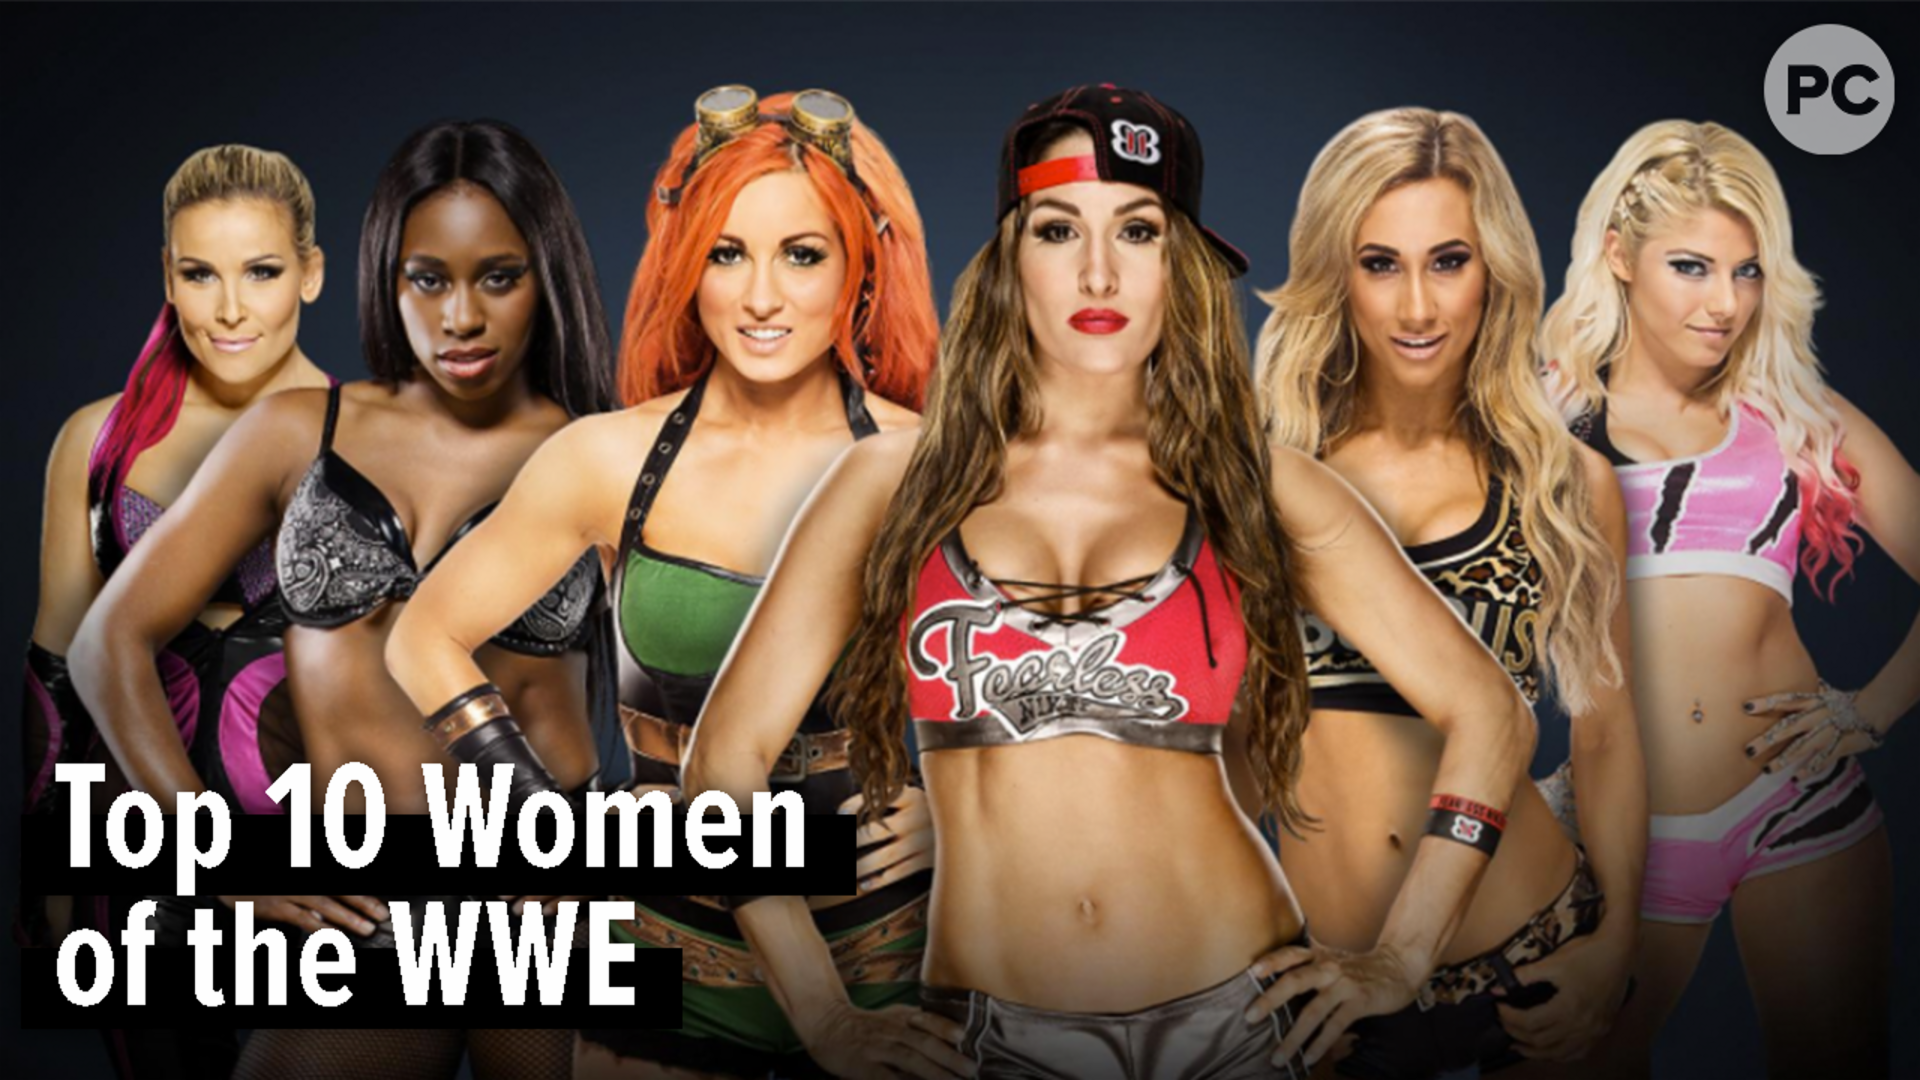 Top 10 Women of the 2018 WWE screen capture